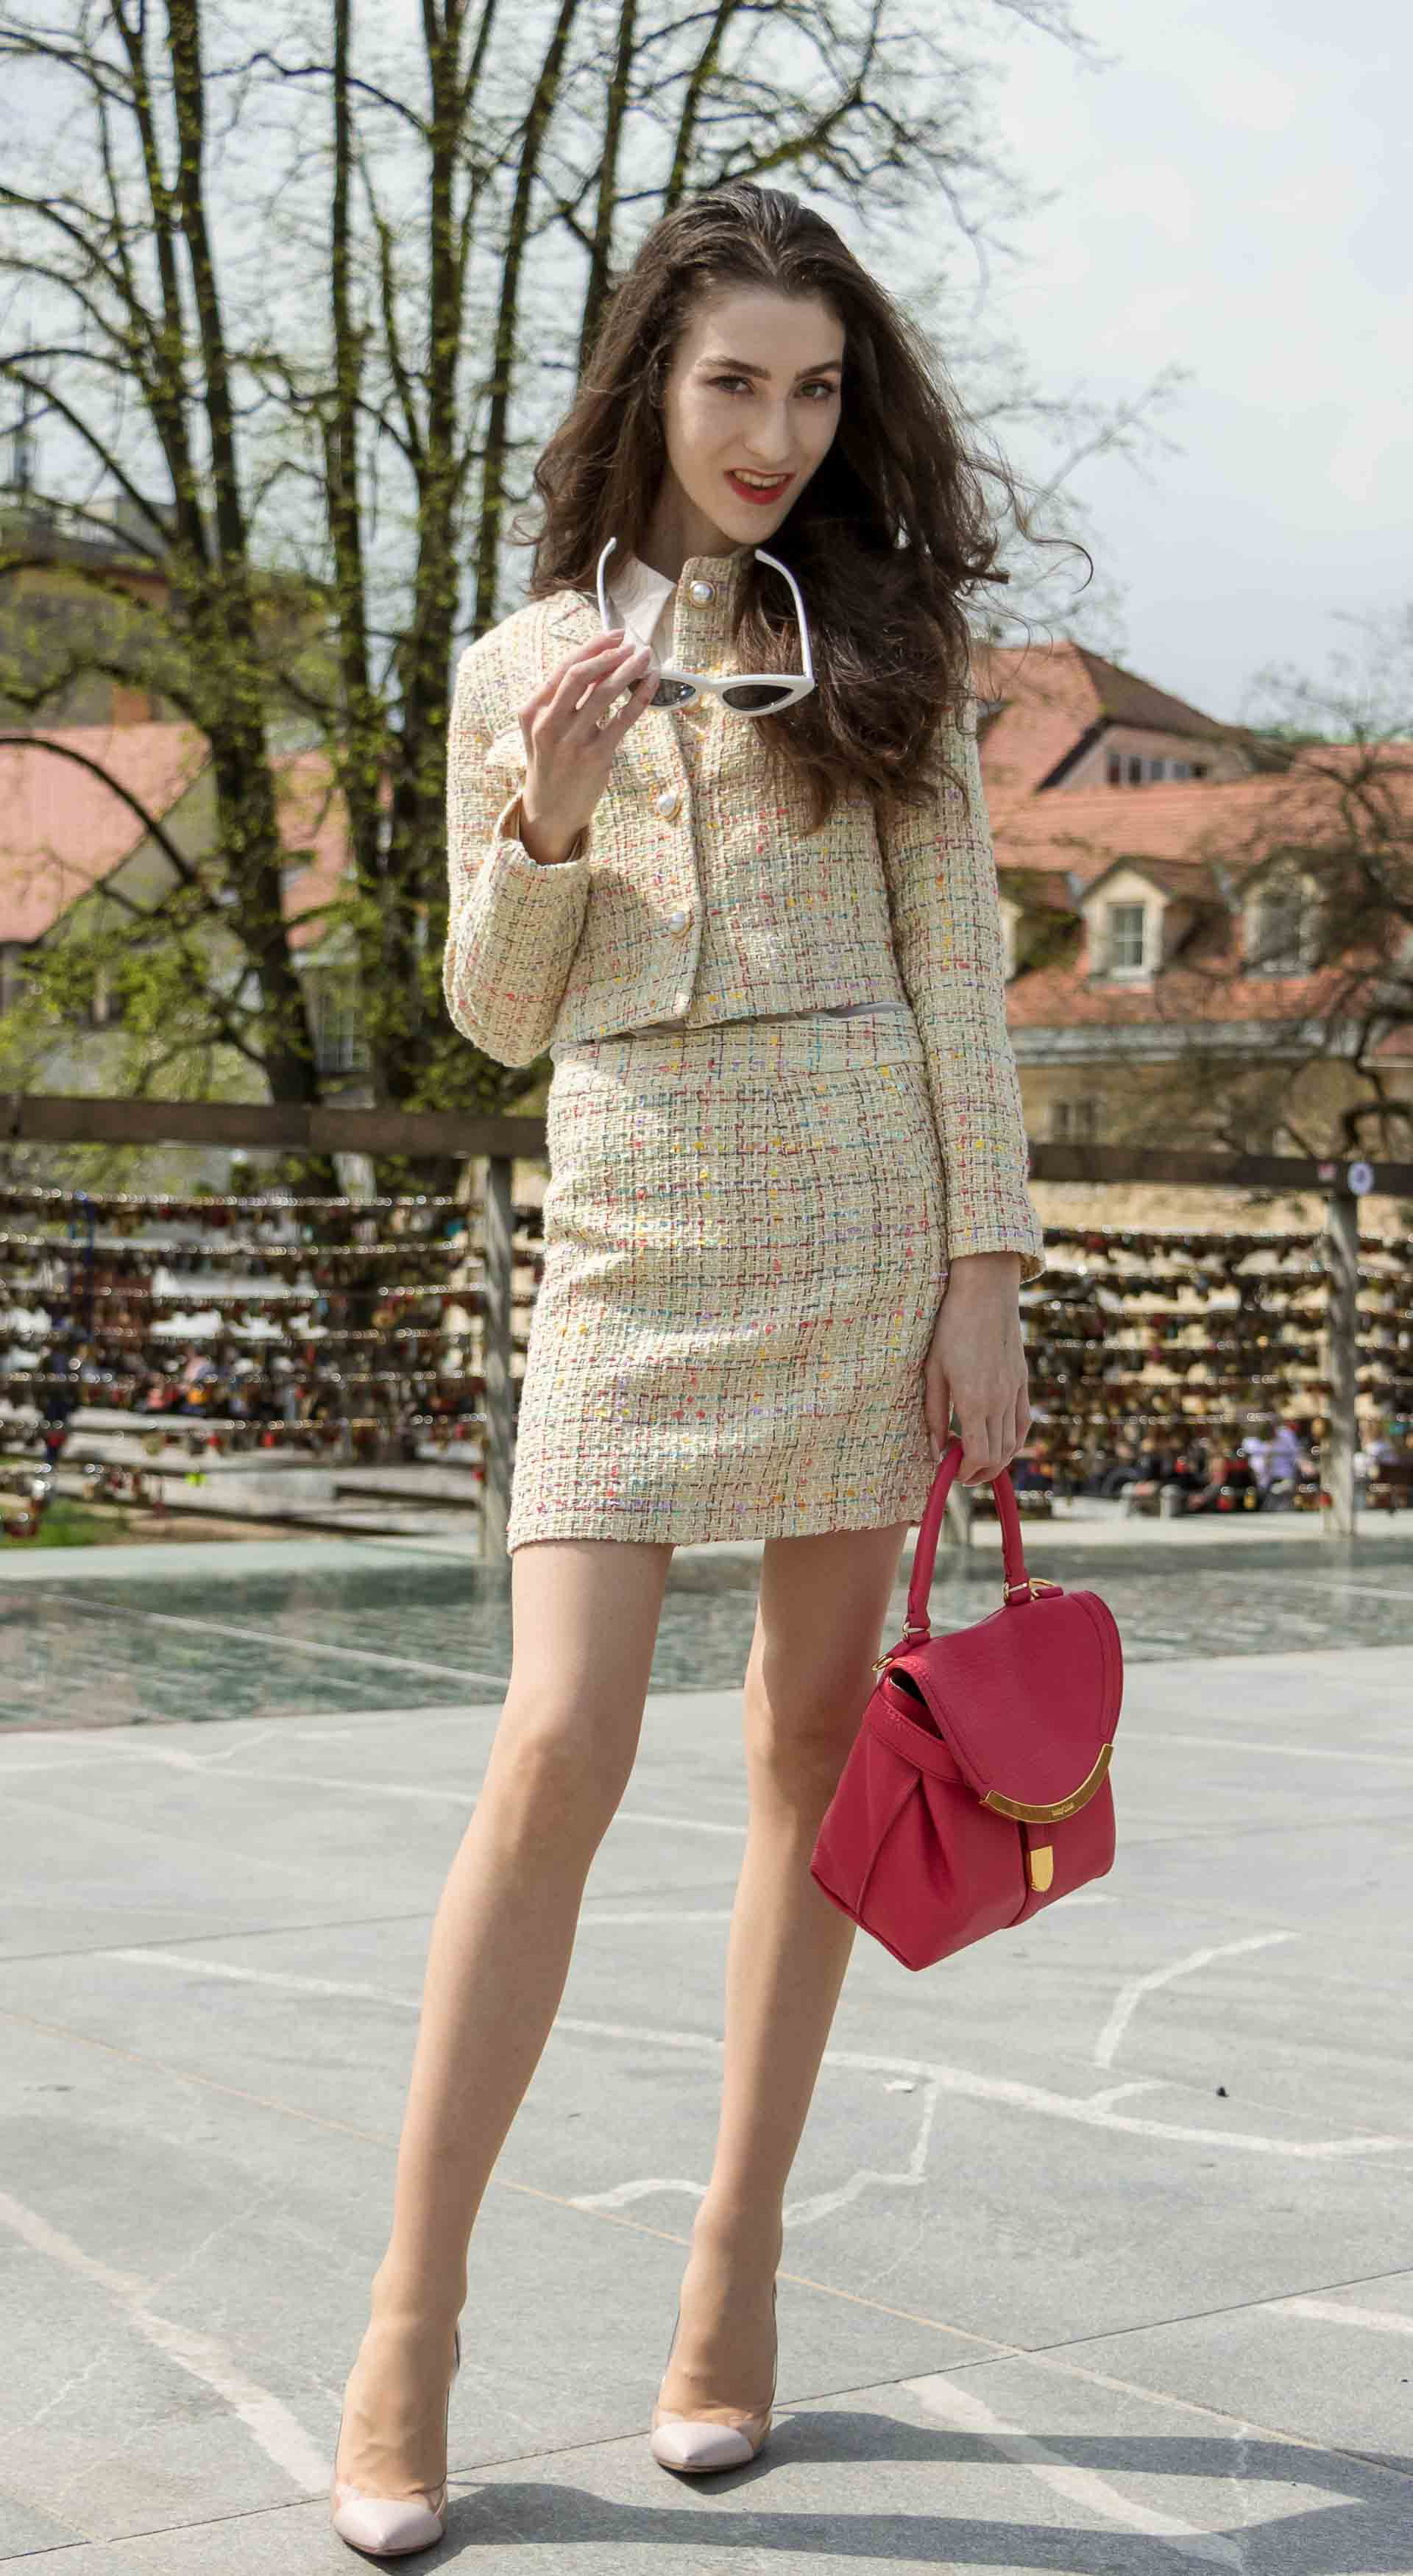 Fashion Blogger Veronika Lipar of Brunette from Wall Street wearing Storets yellow tweed mini skirt suit, Gianvito Rossi plexi pumps, See by Chloe pink top handle bag, Adam Selman x Lespecs white Lolita sunglasses on the bridge